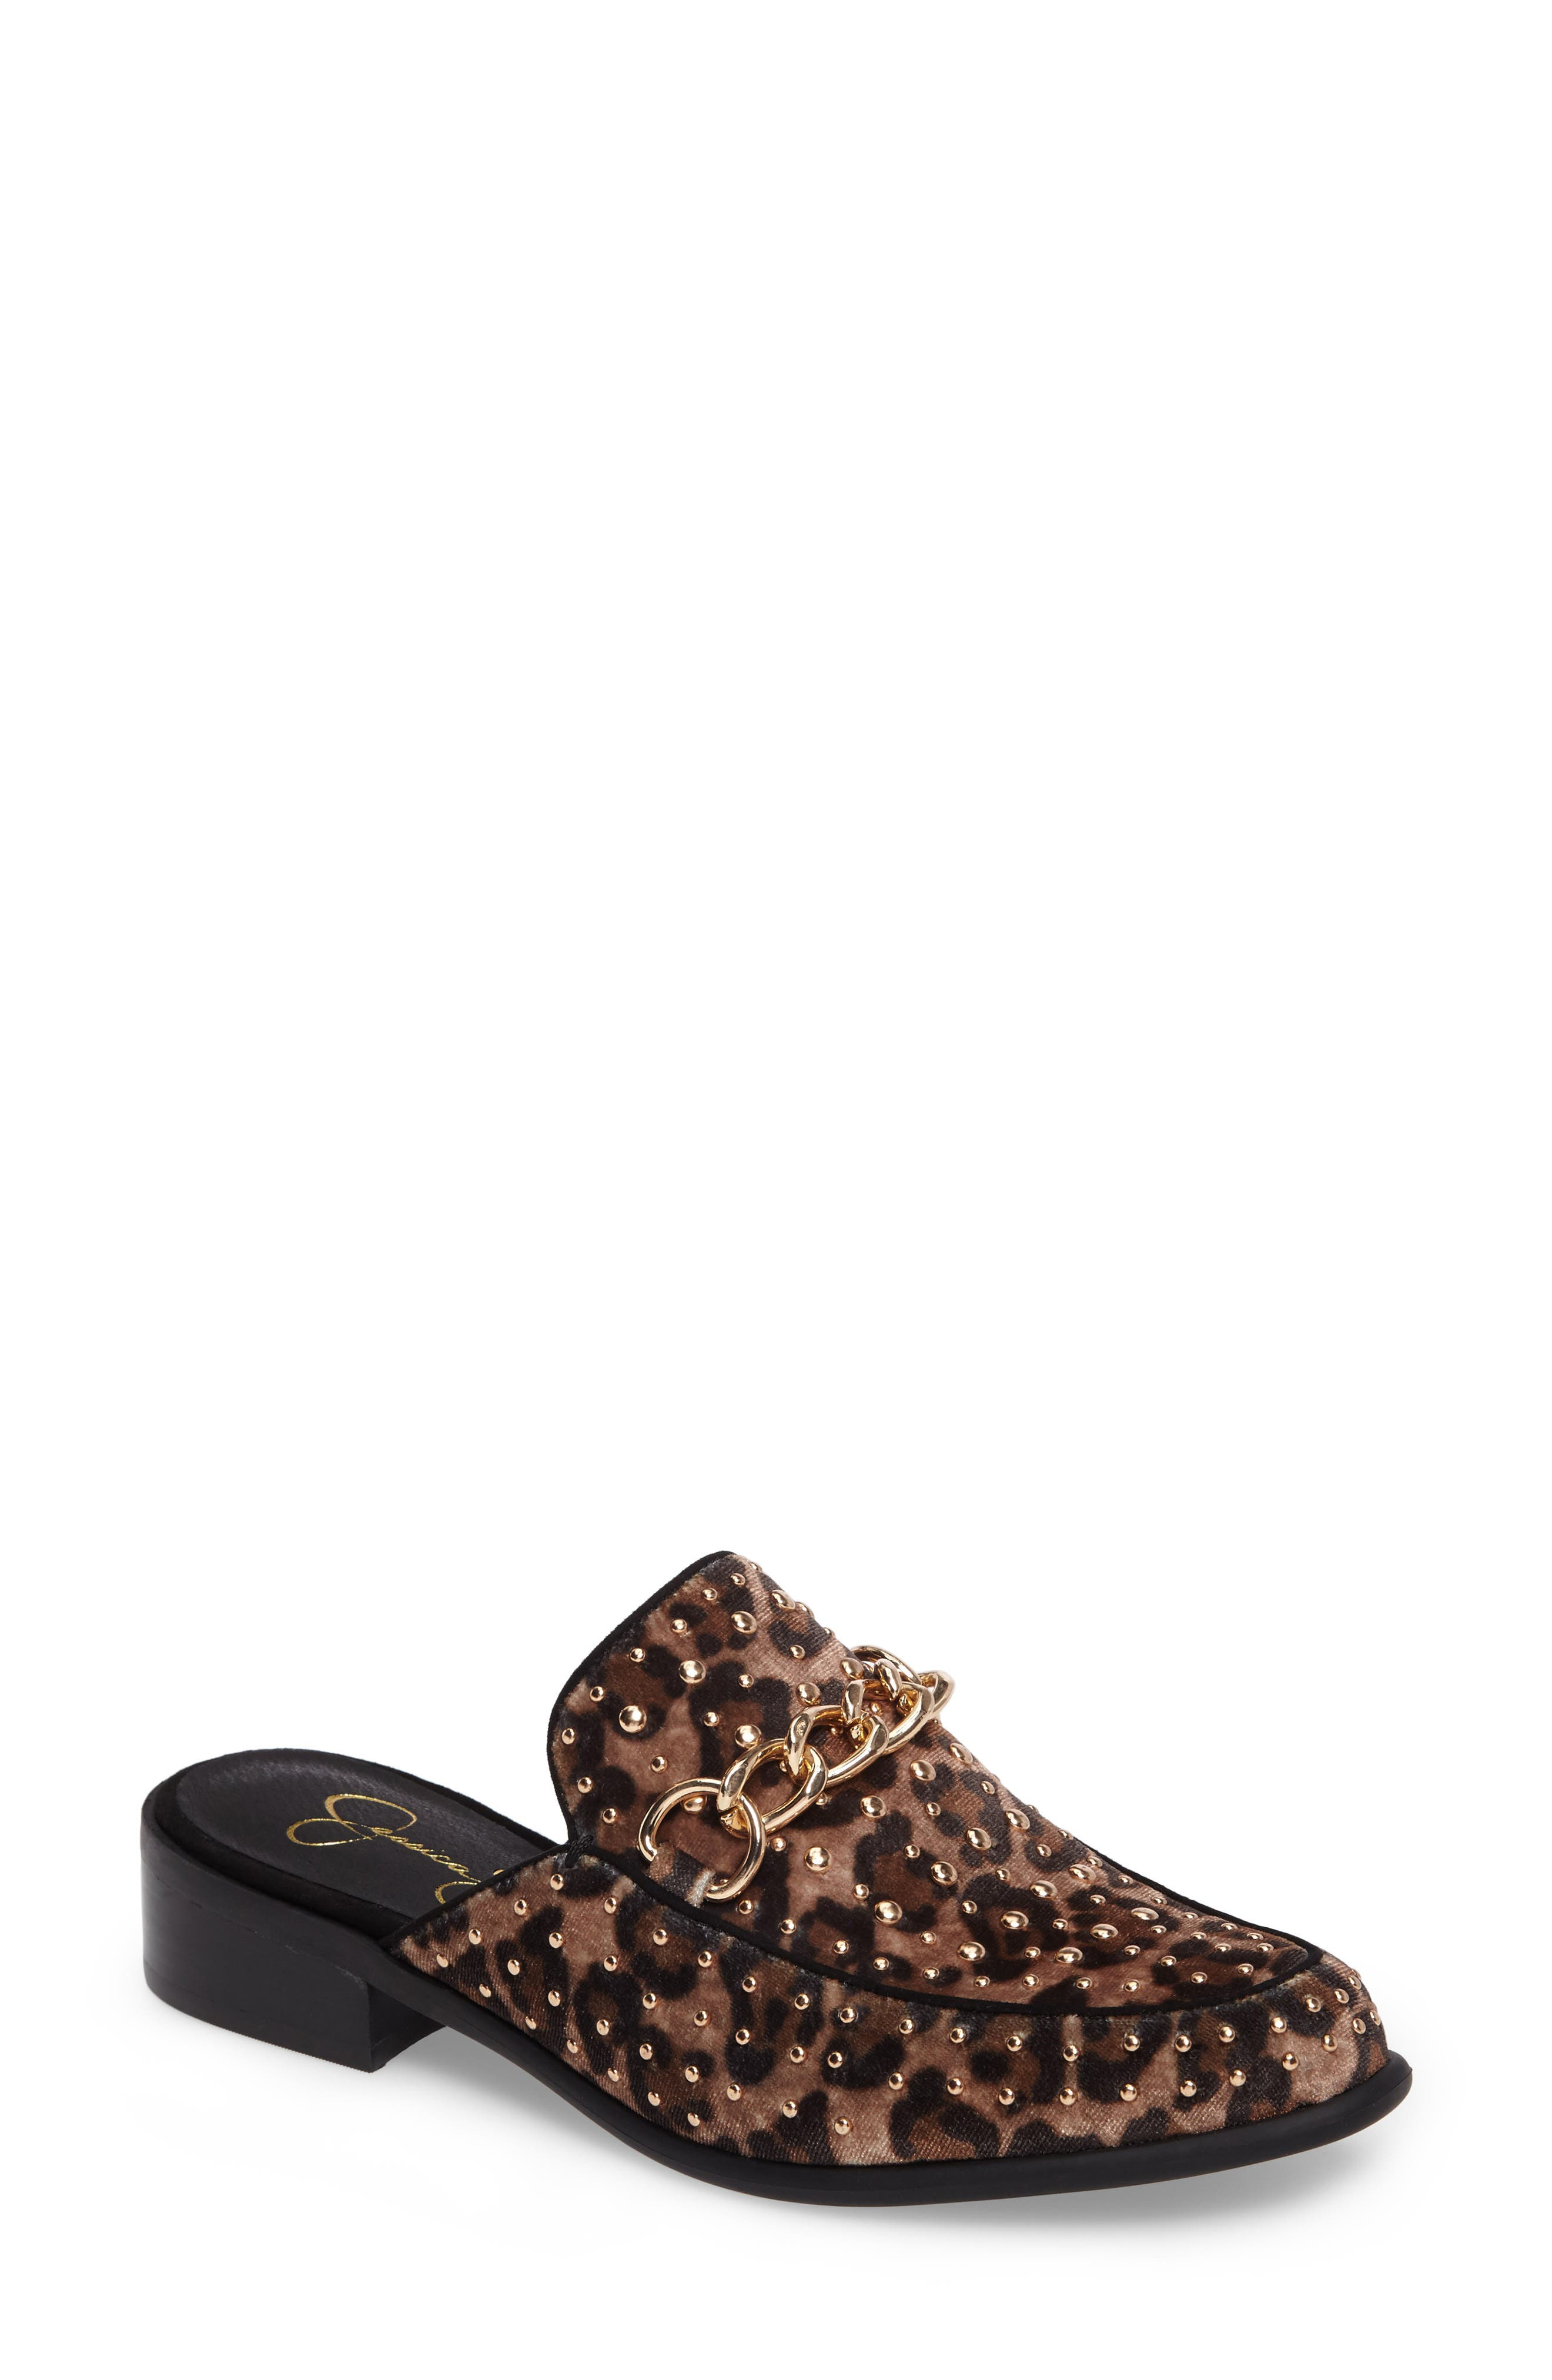 Alternate Image 1 Selected - Jessica Simpson Beez Loafer Mule (Women)